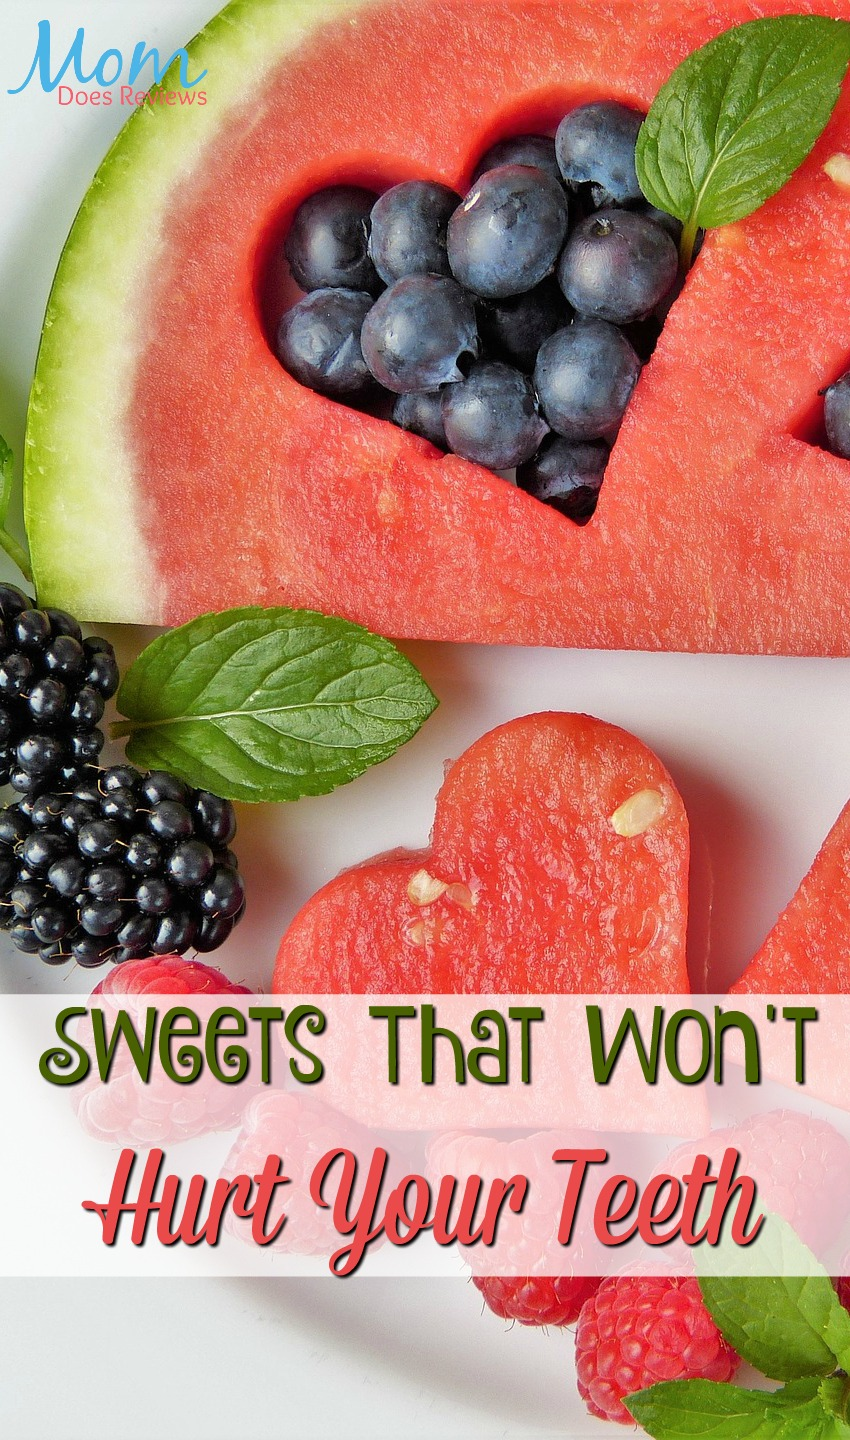 Sweets That Won't Hurt Your Teeth